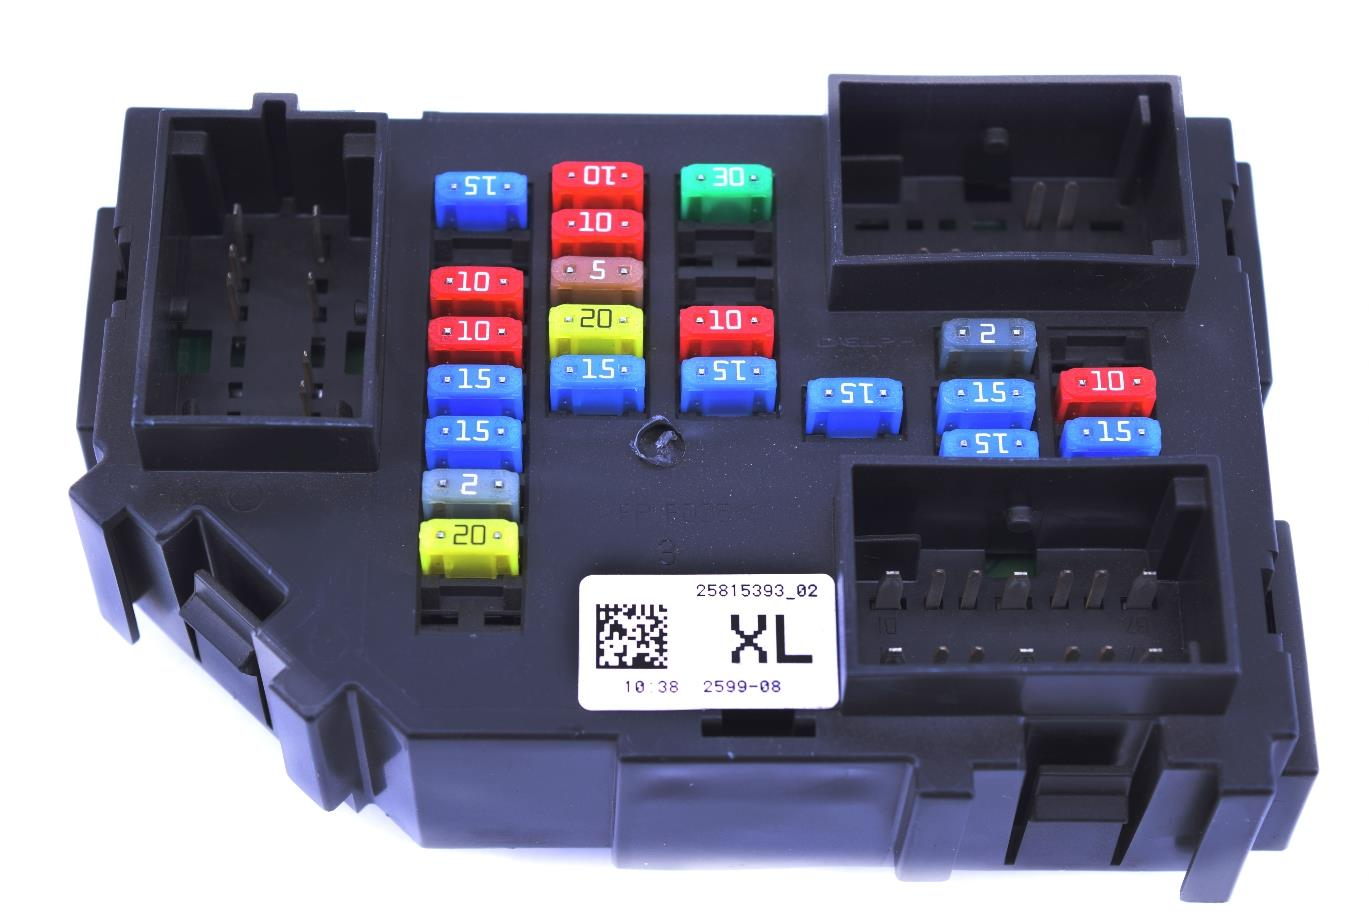 Delphi Fuse Box 2005 Chevy Z71 Tahoe Interior Wiring Diagrams New Gm 2007 2011 Silverado 2500hd Relay Junction Block